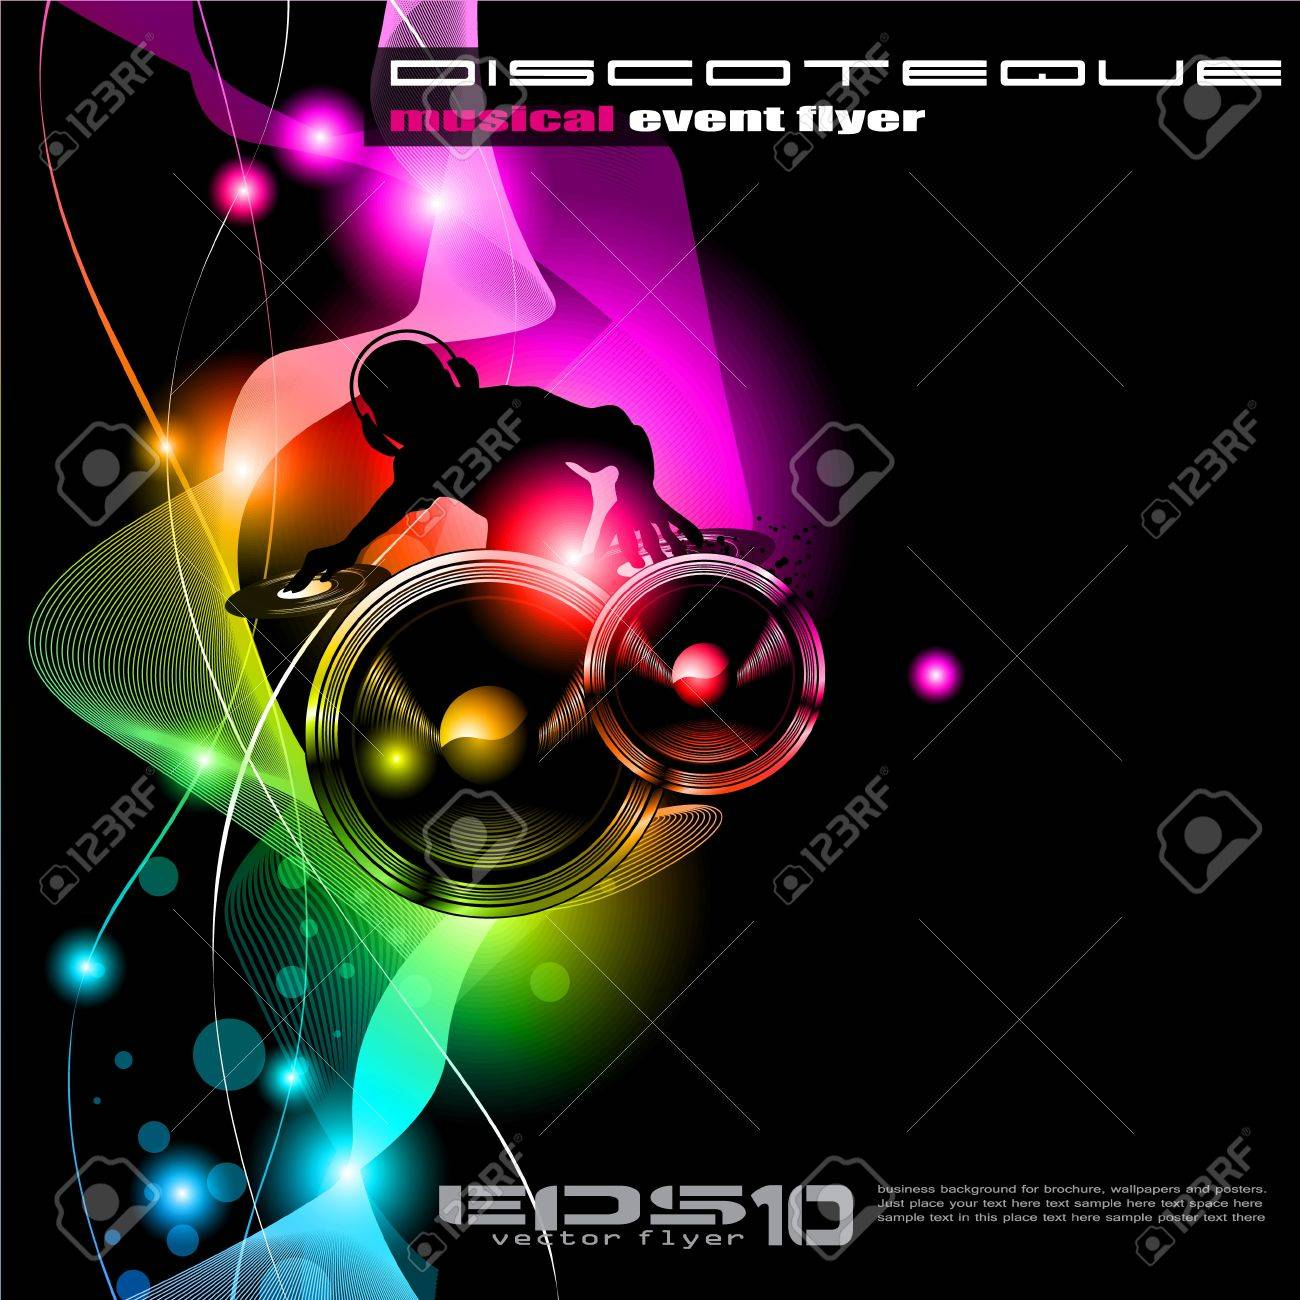 Poster Background For Music International Disco Event With Rainbow